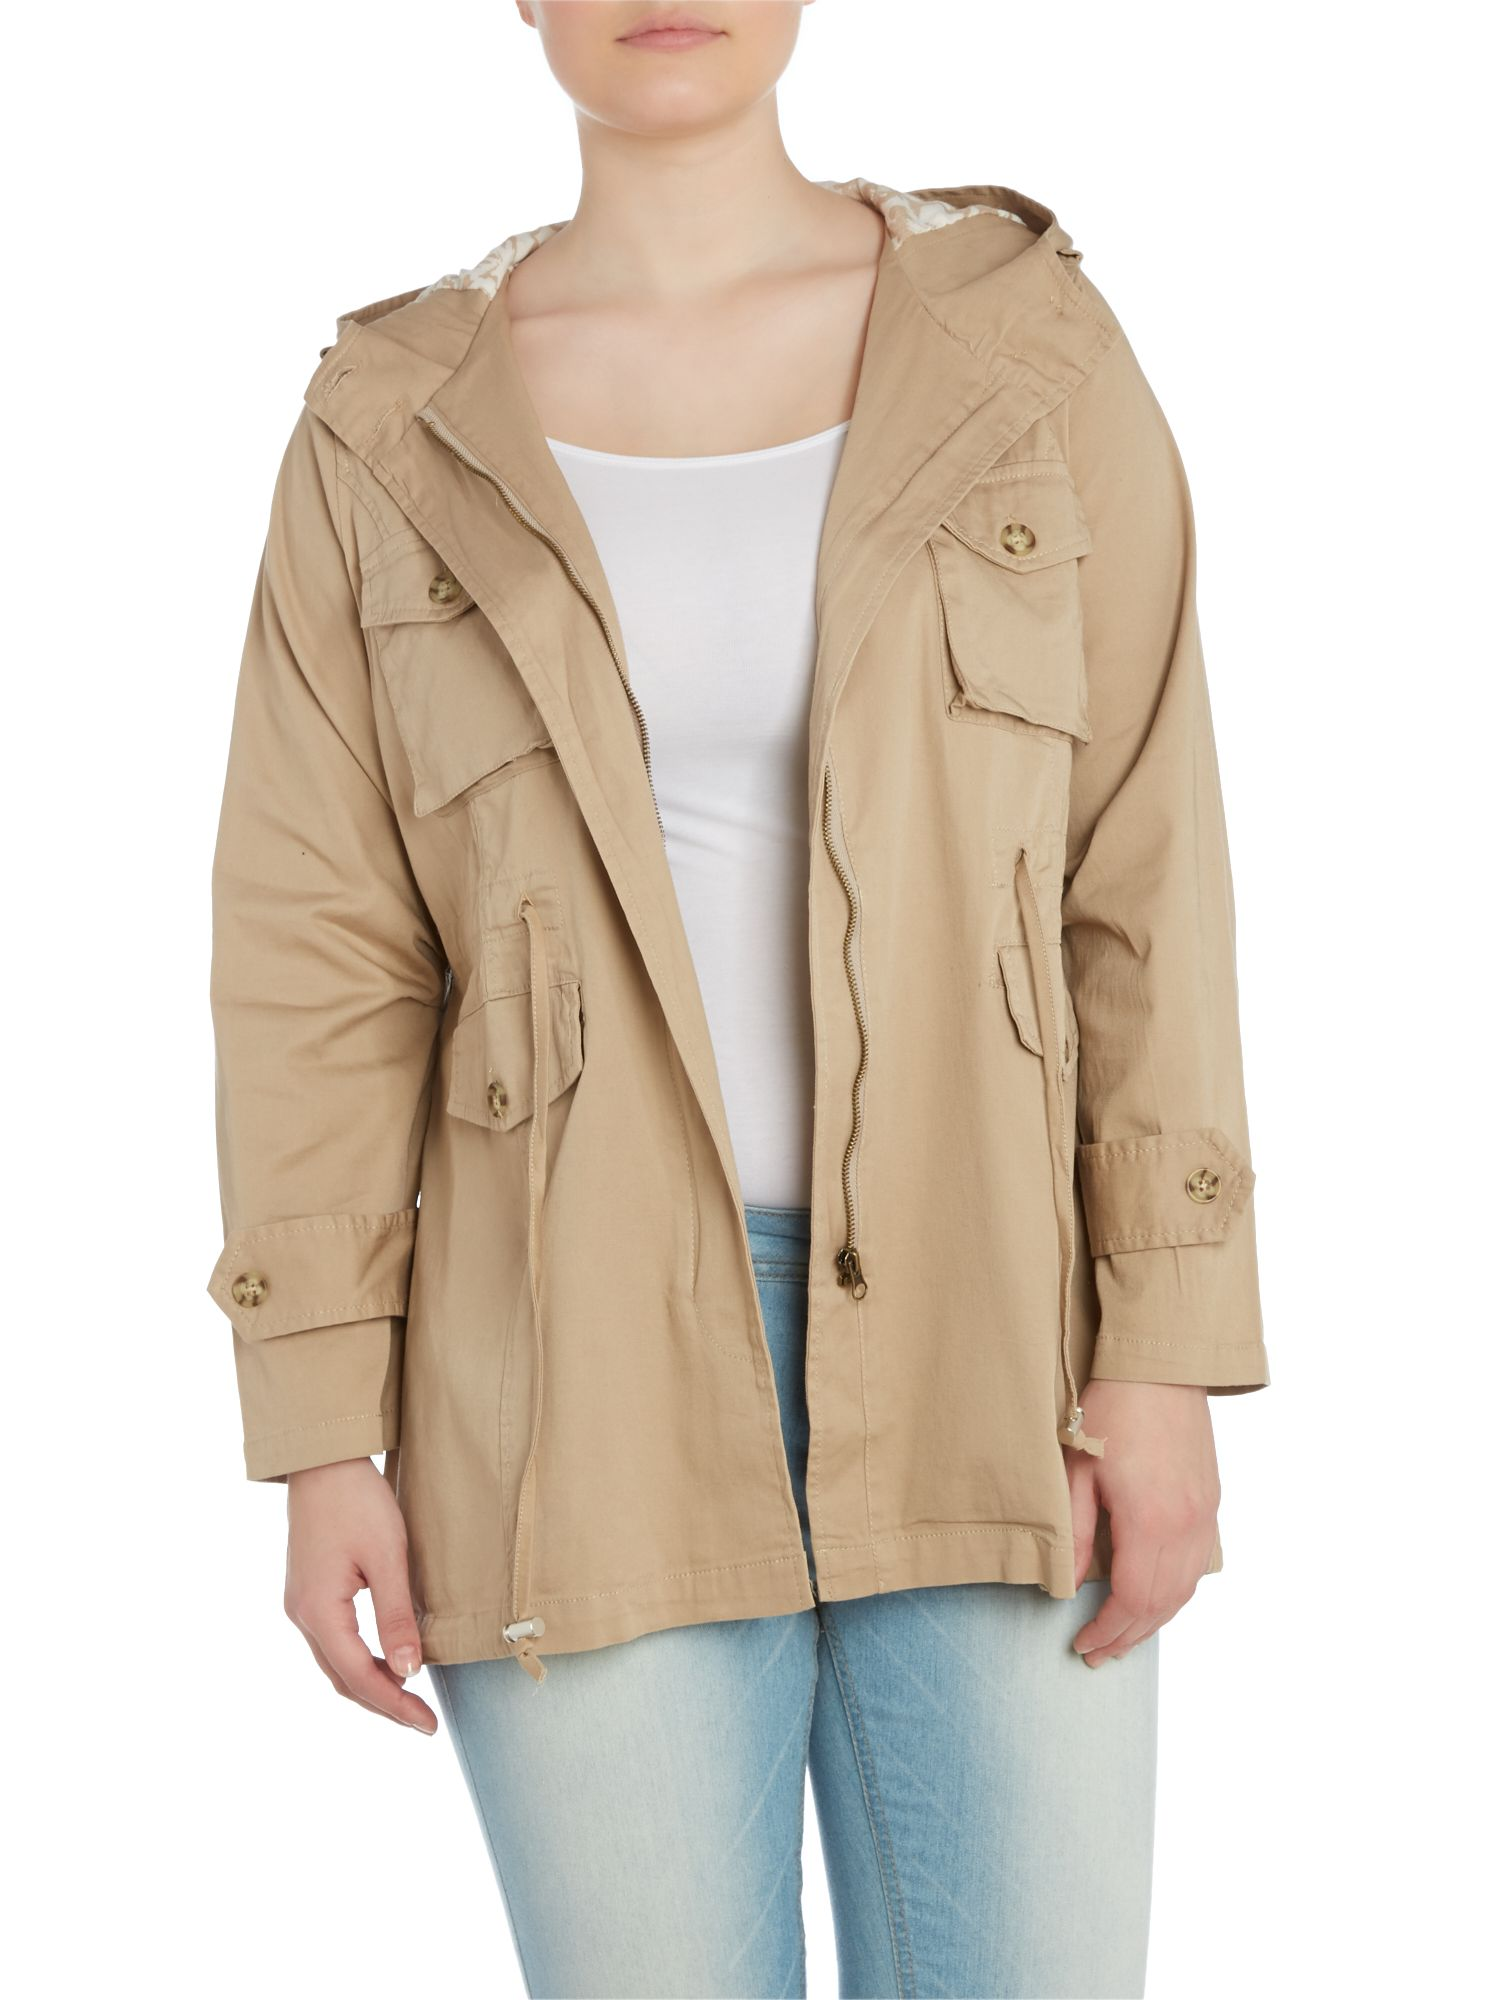 Hooded drawstring detail coat